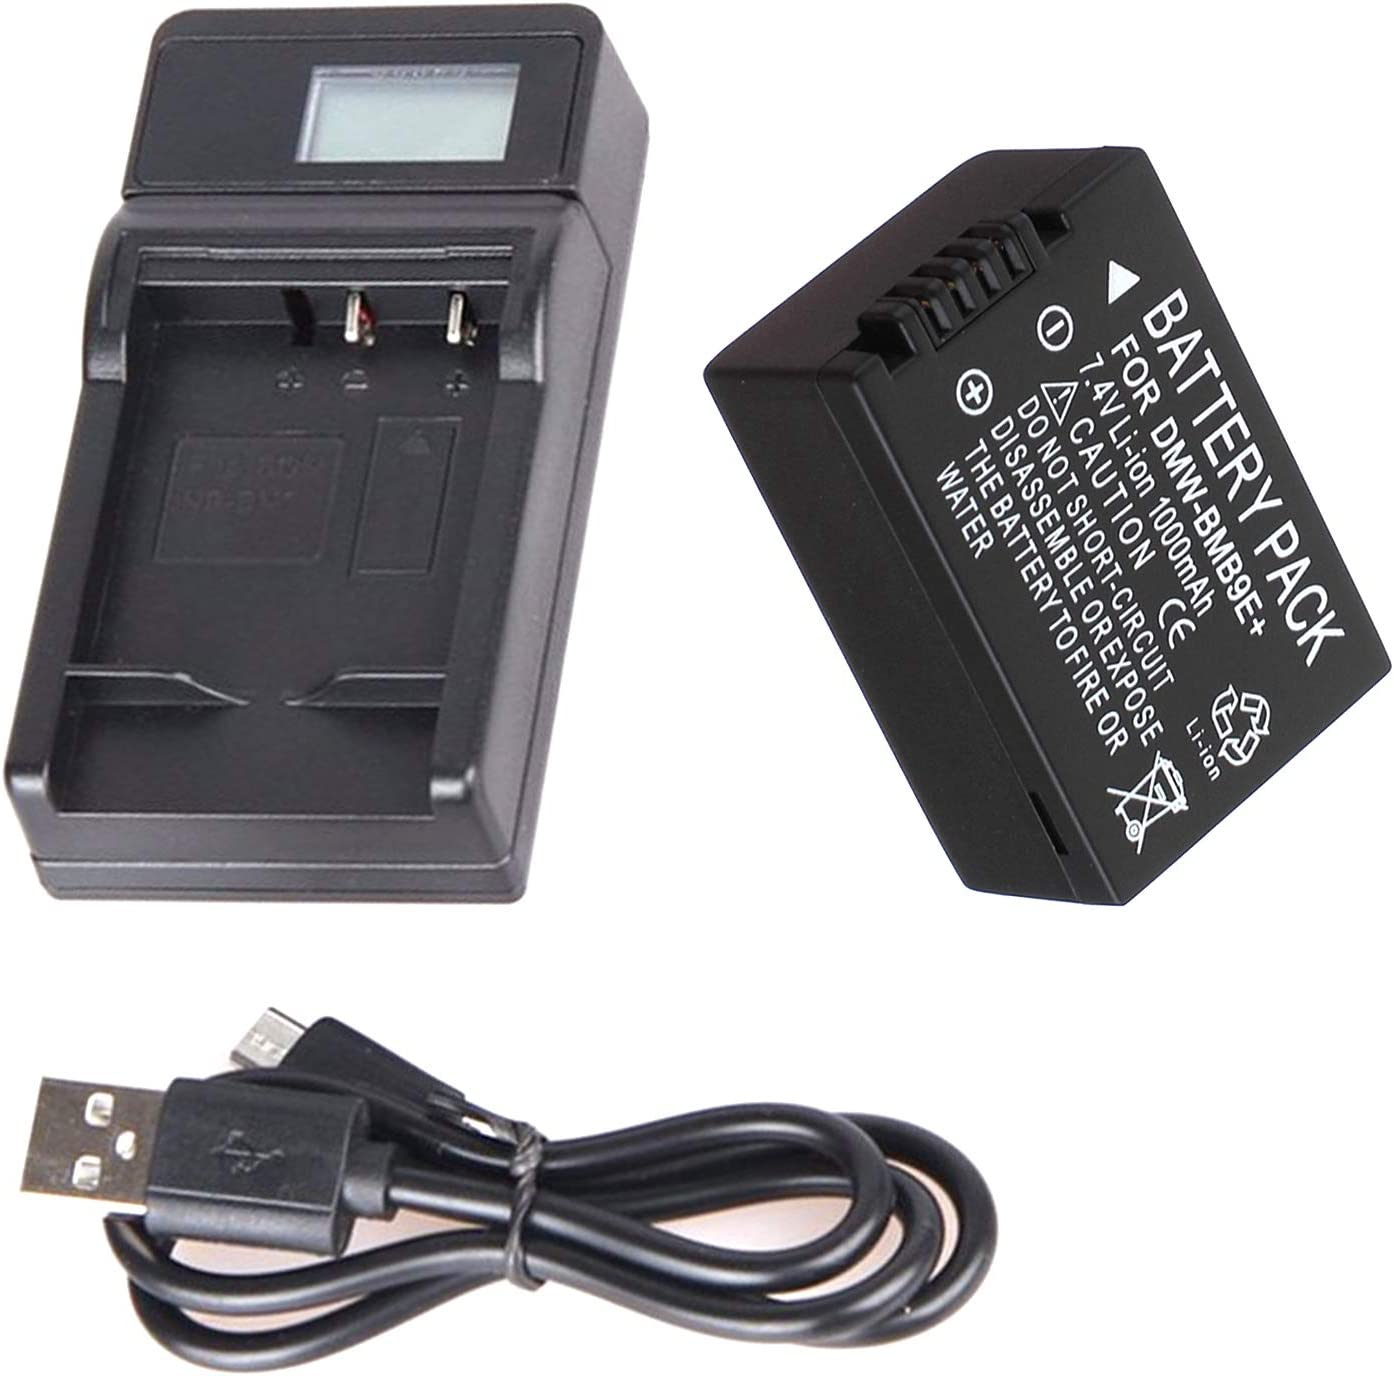 Battery Pack and Max 45% OFF LCD Limited price sale USB Travel Charger DMC- Lumix for Panasonic